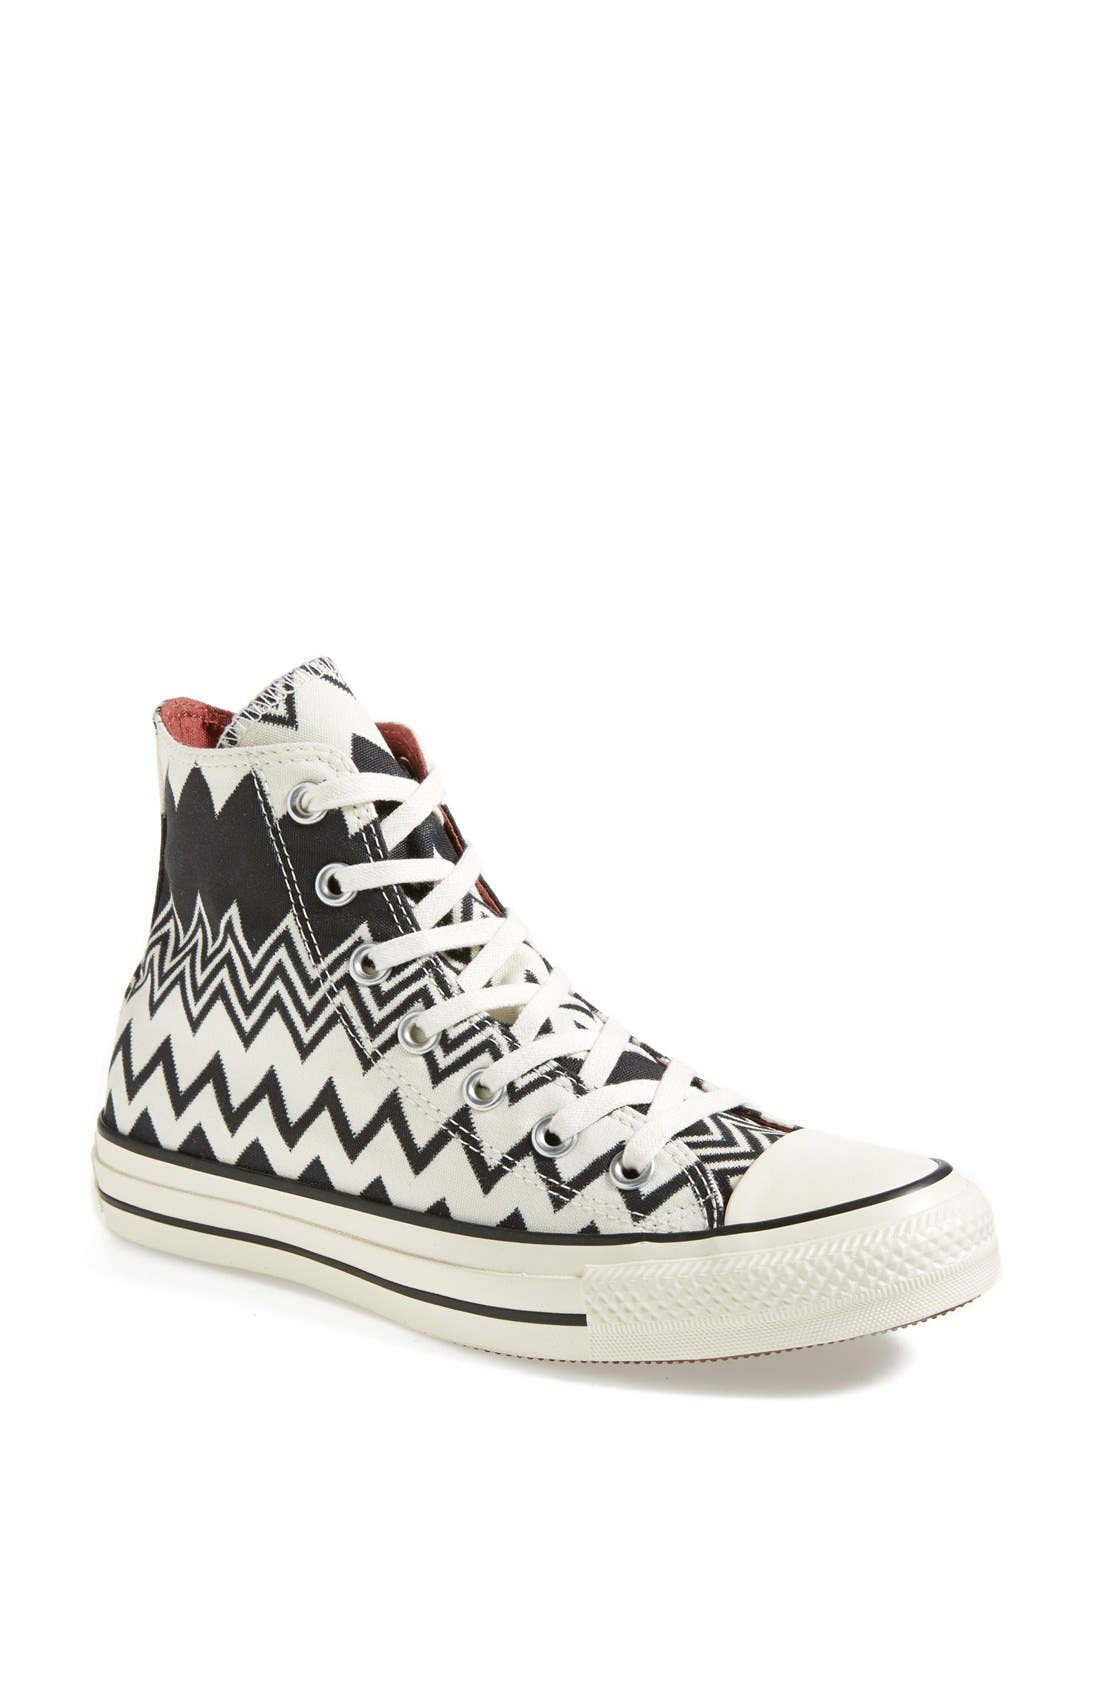 x Missoni Chuck Taylor<sup>®</sup> All Star<sup>®</sup> High Top Sneaker,                             Main thumbnail 1, color,                             001